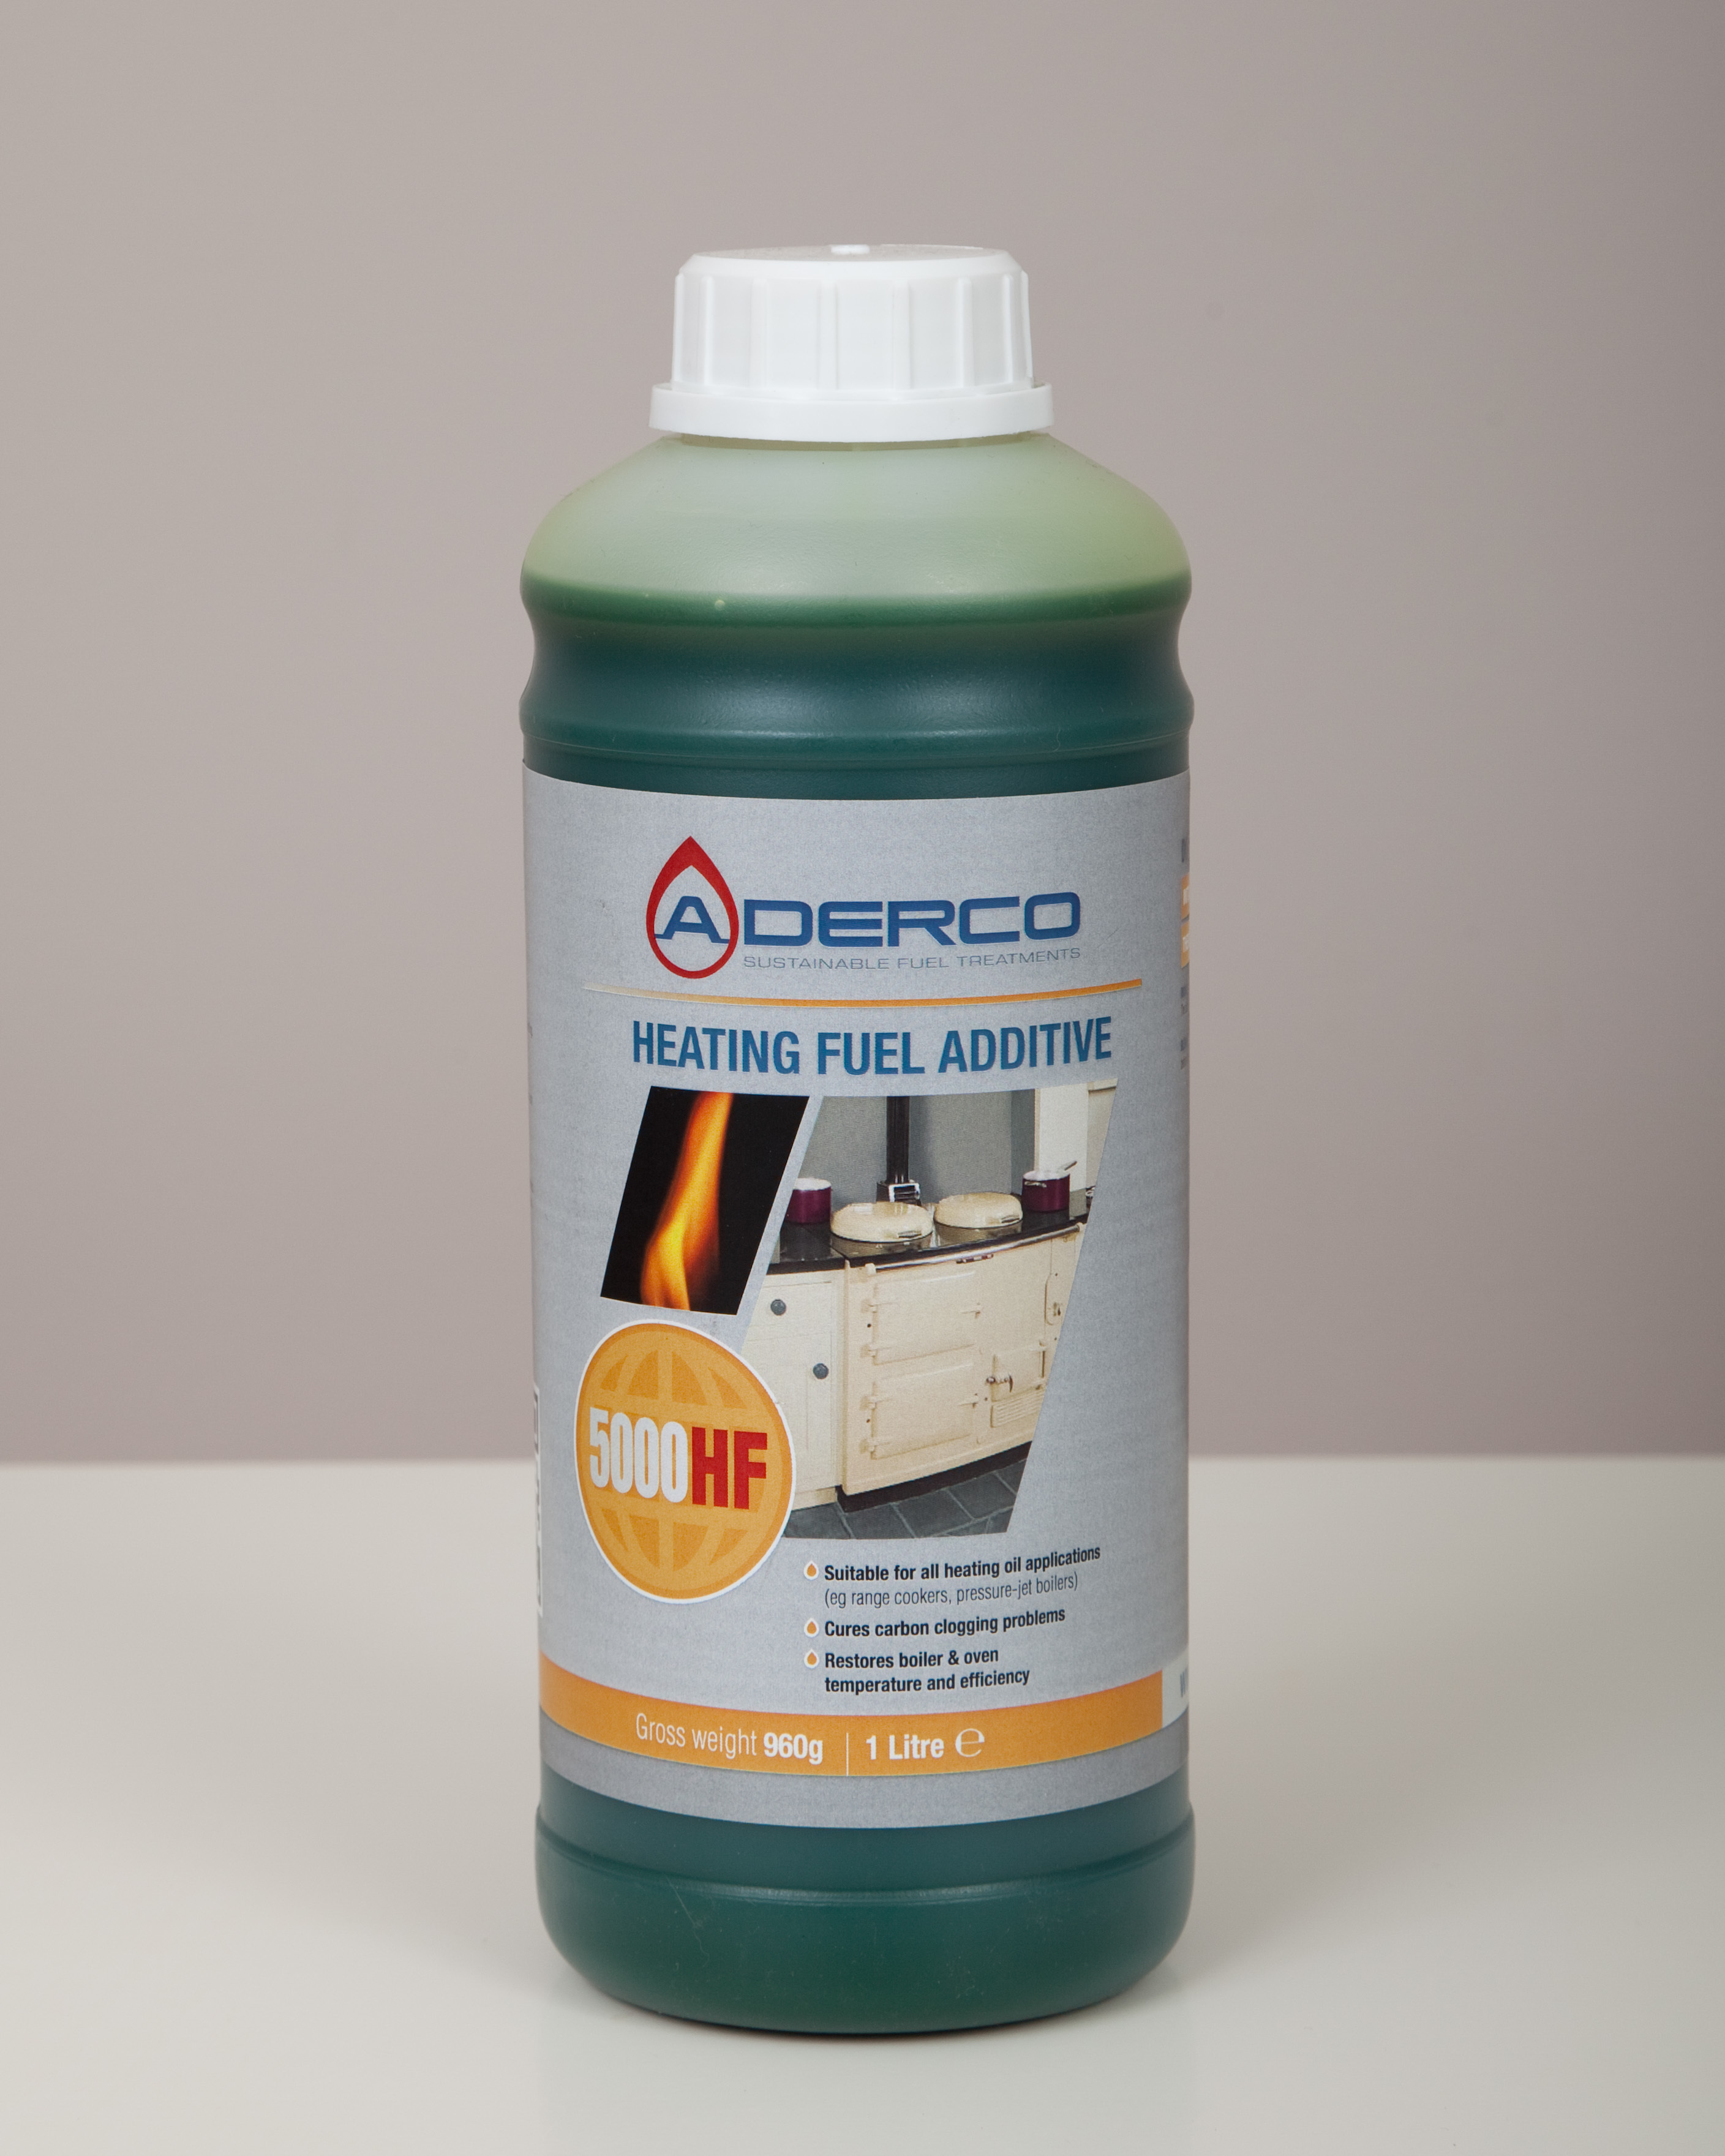 Aderco 5000 Heating Fuel Additive 1 litre AD5000-10